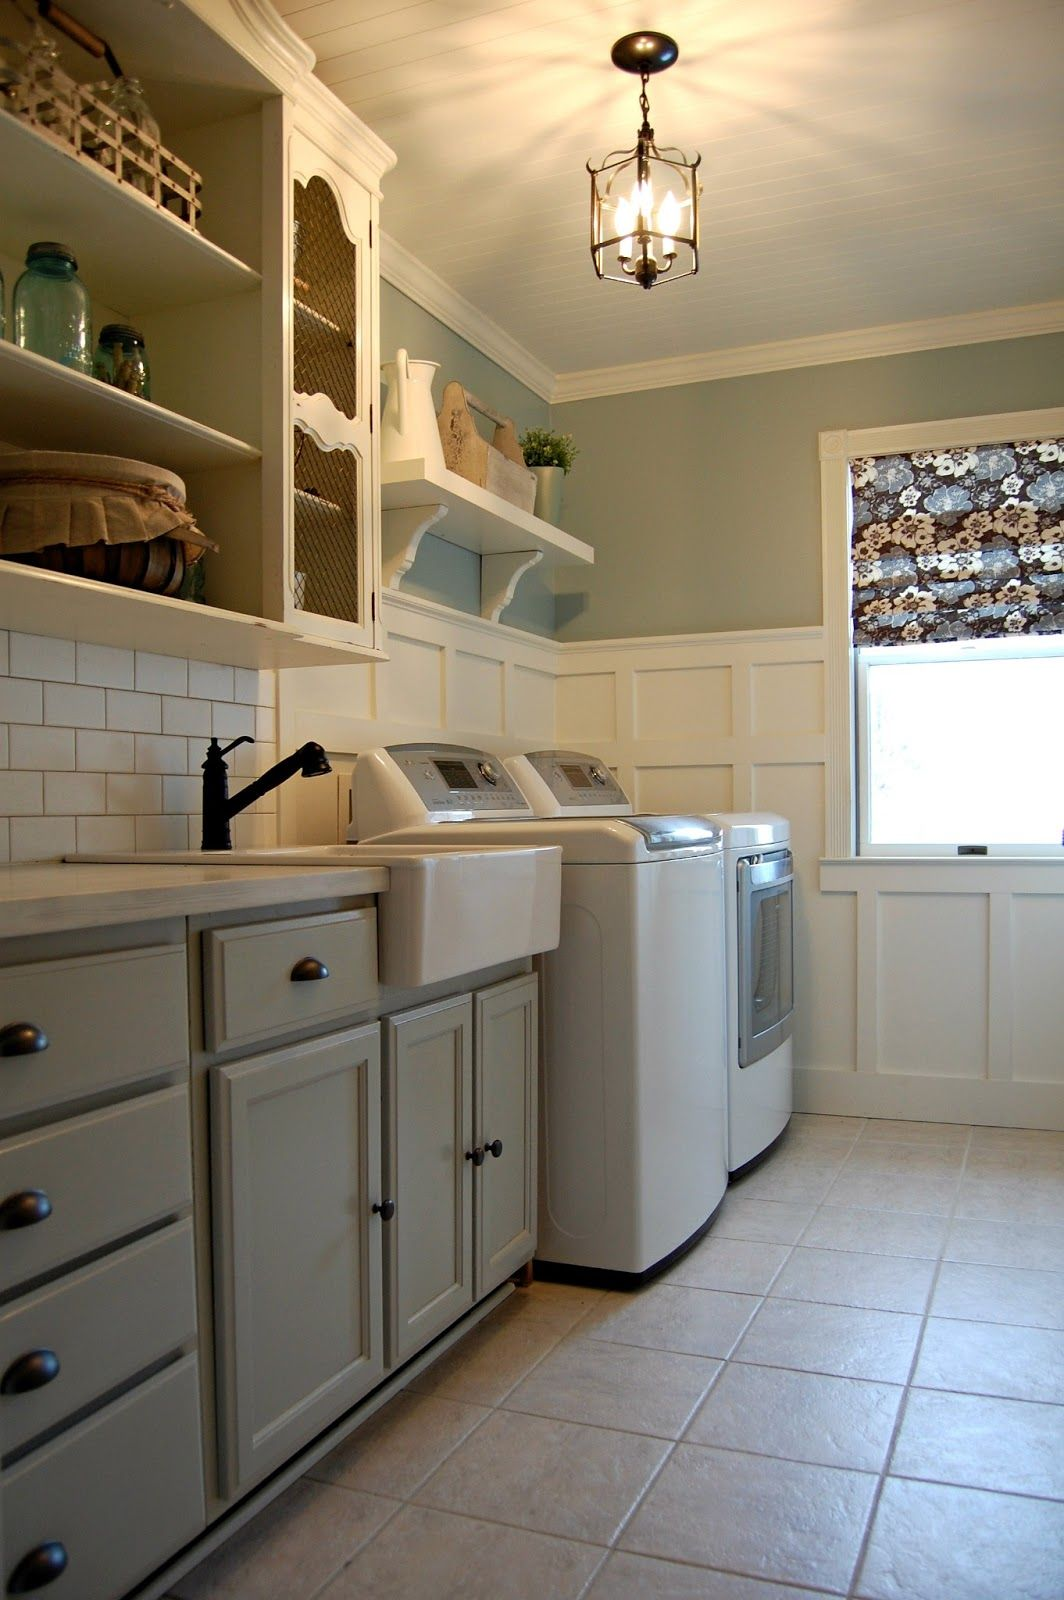 Pictures Of Laundry Rooms